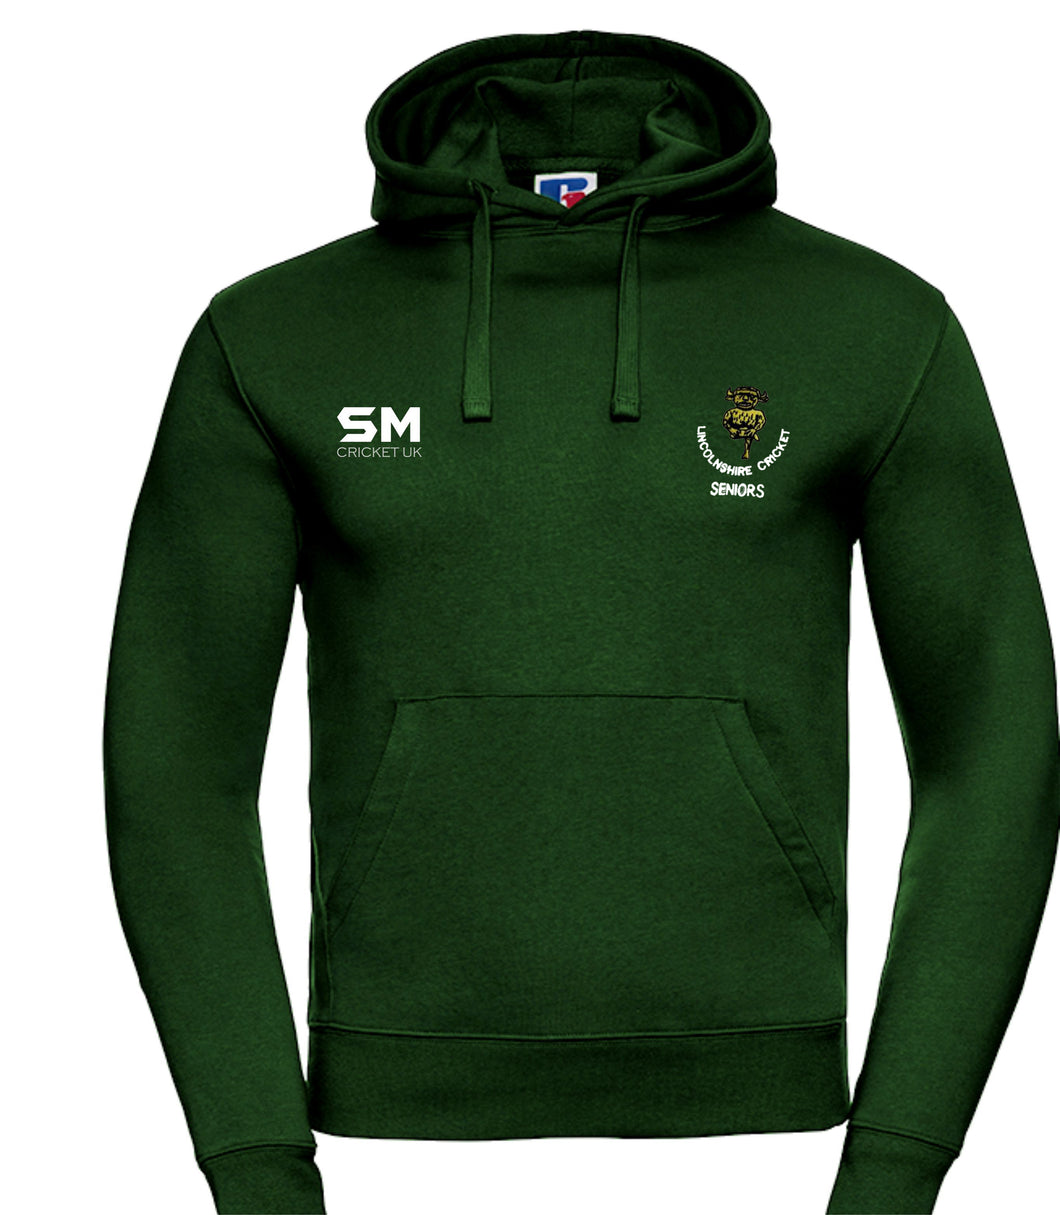 Lincolnshire Cricket - Seniors Hoodie - Senior